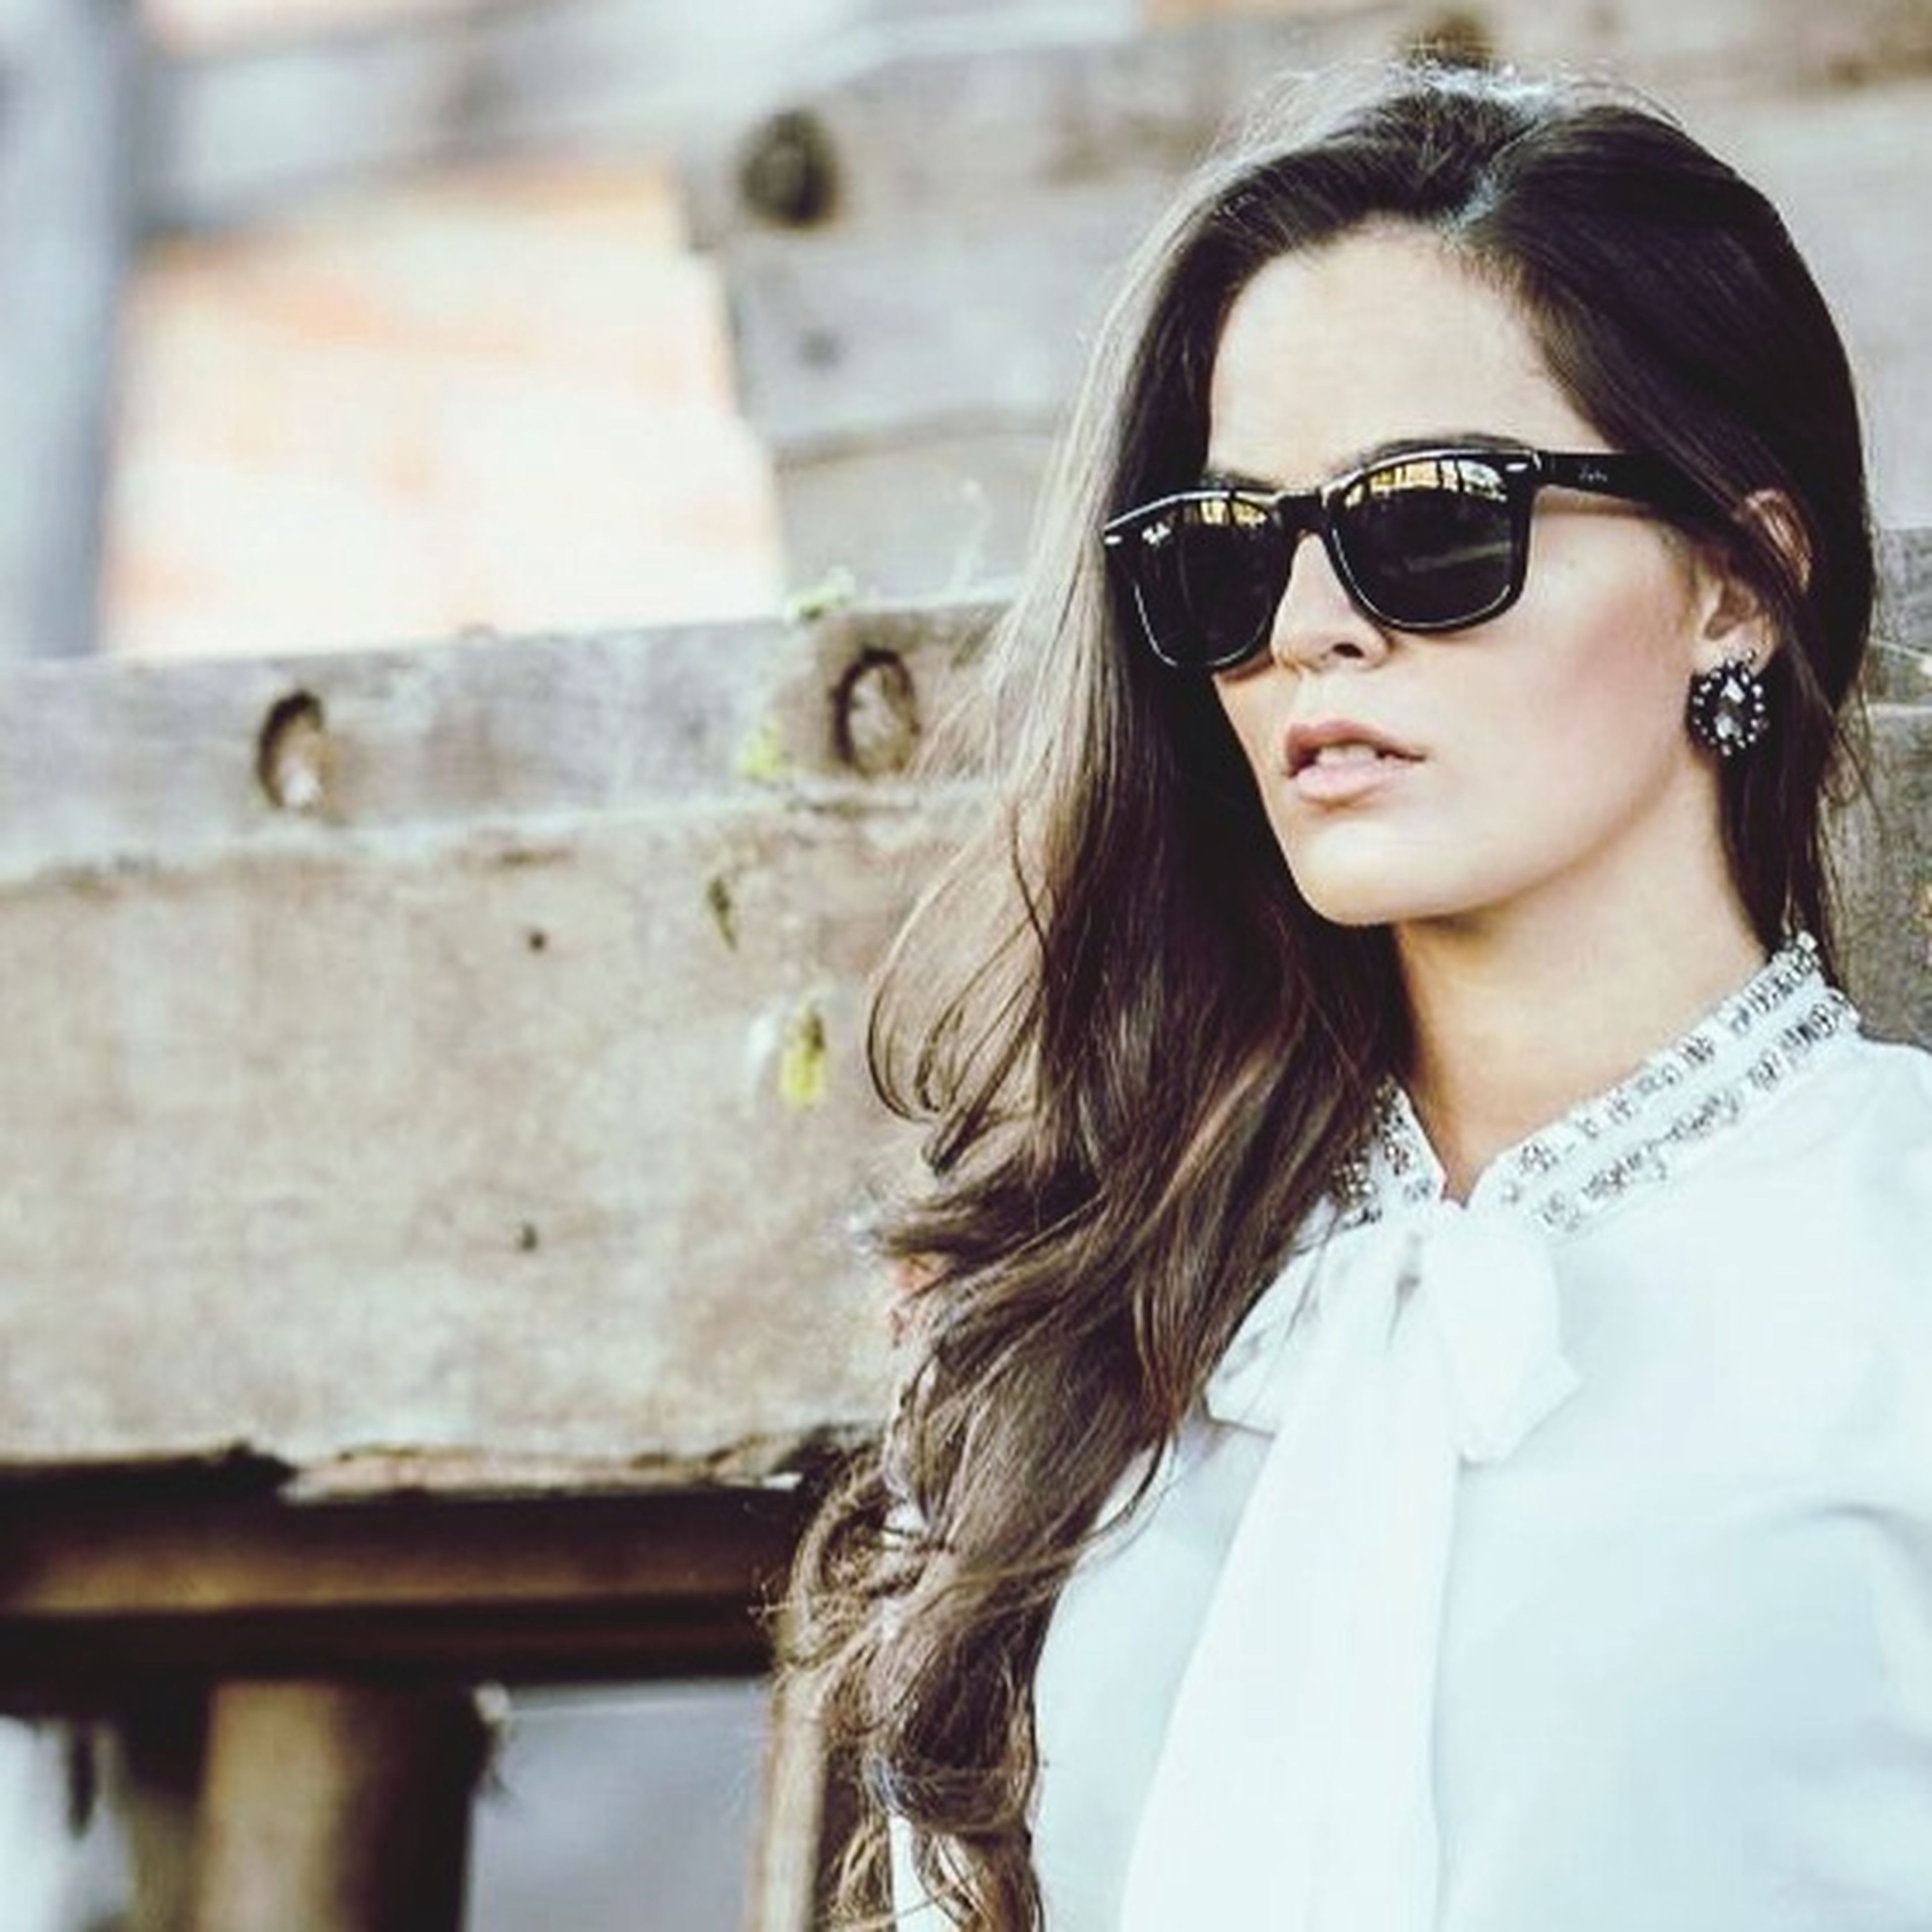 young adult, young women, lifestyles, person, leisure activity, long hair, focus on foreground, headshot, portrait, front view, looking at camera, casual clothing, sunglasses, smiling, waist up, black hair, close-up